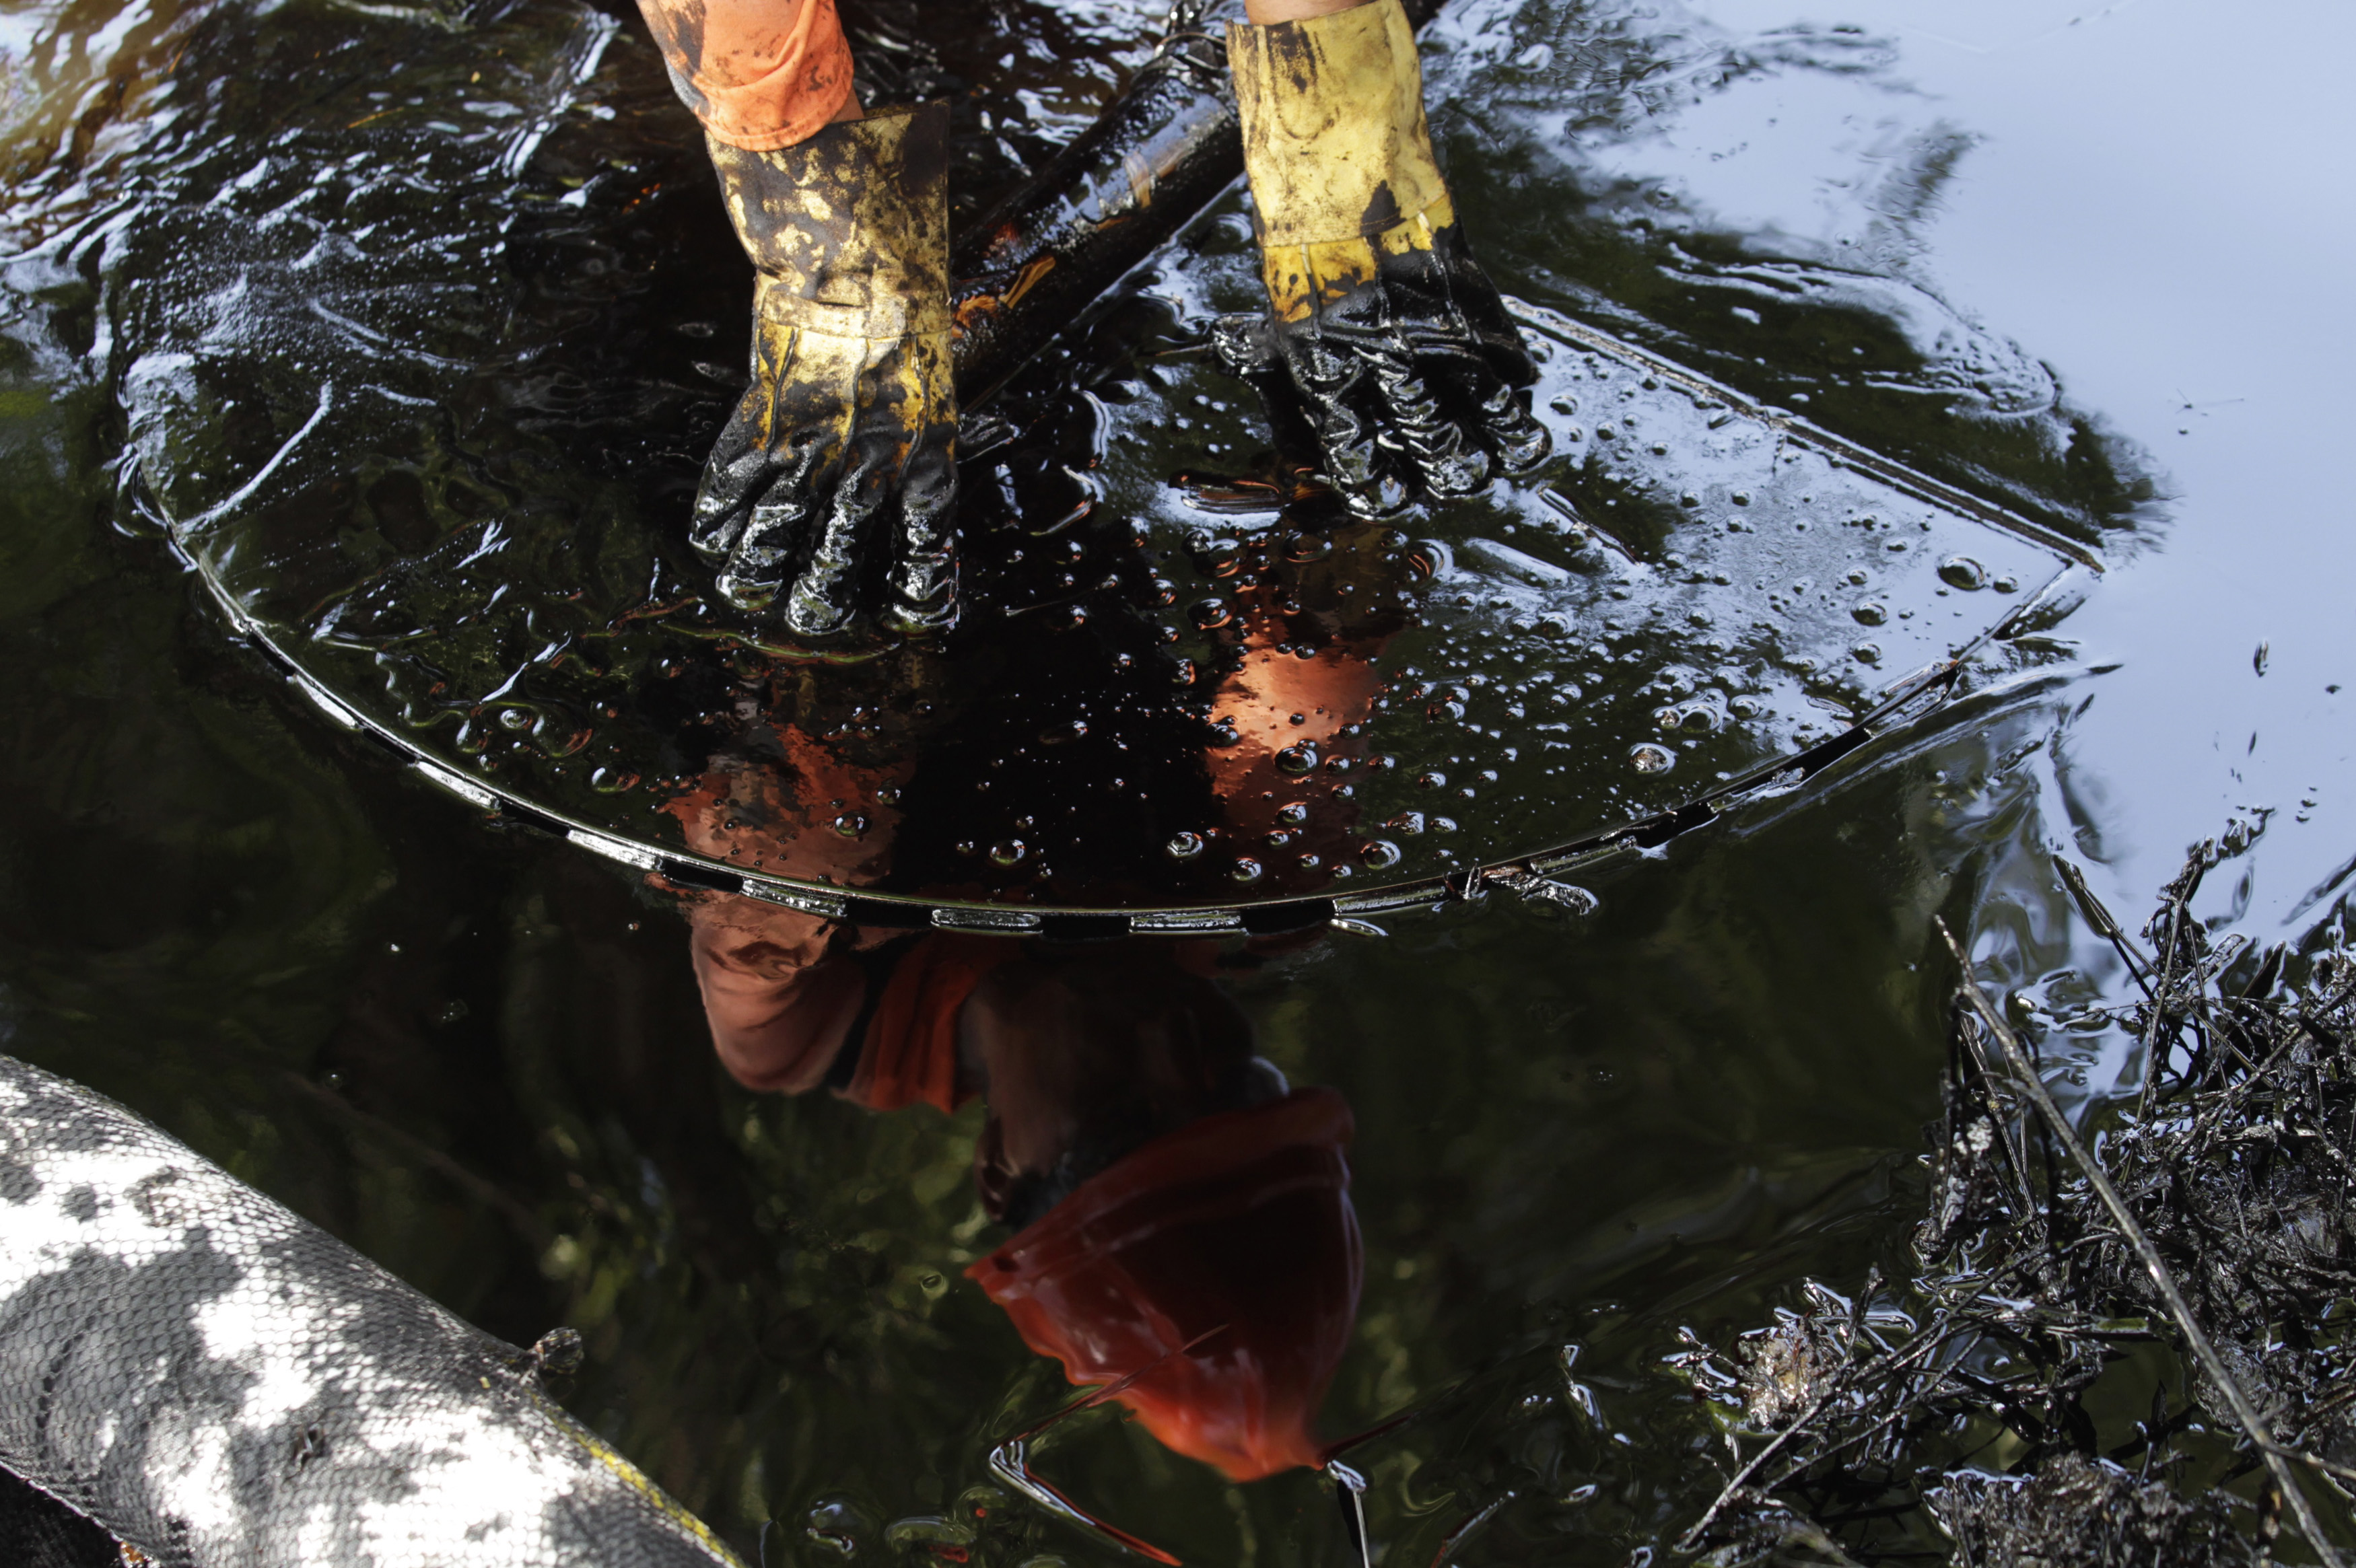 BP agrees to claims worth USD 18.7 bn over Gulf of Mexico spill